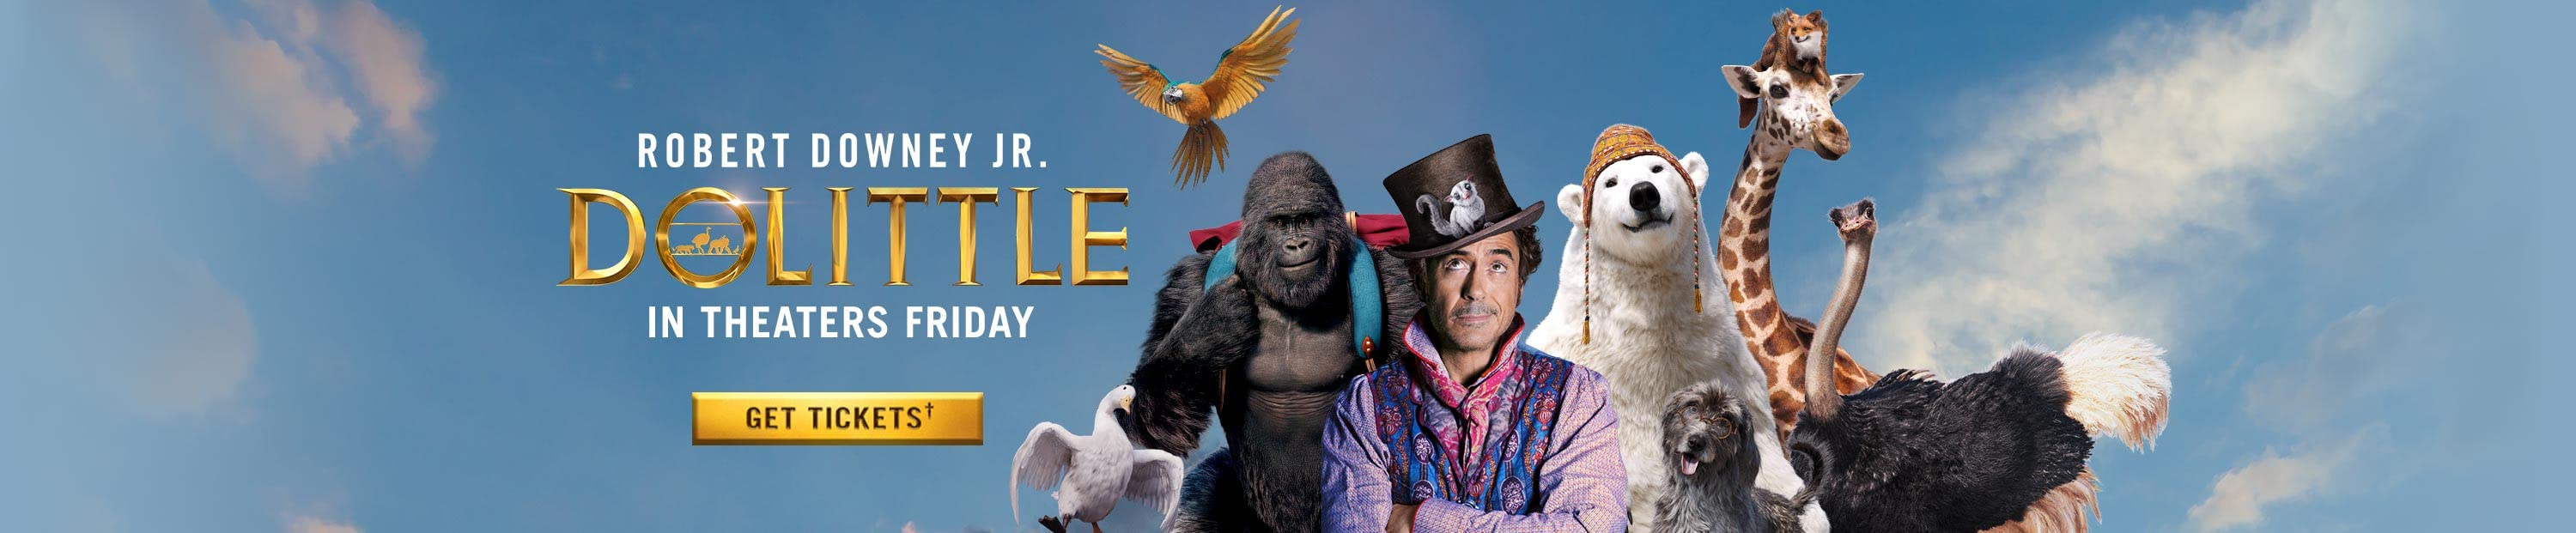 Dolittle in theaters January 17. Get tickets.